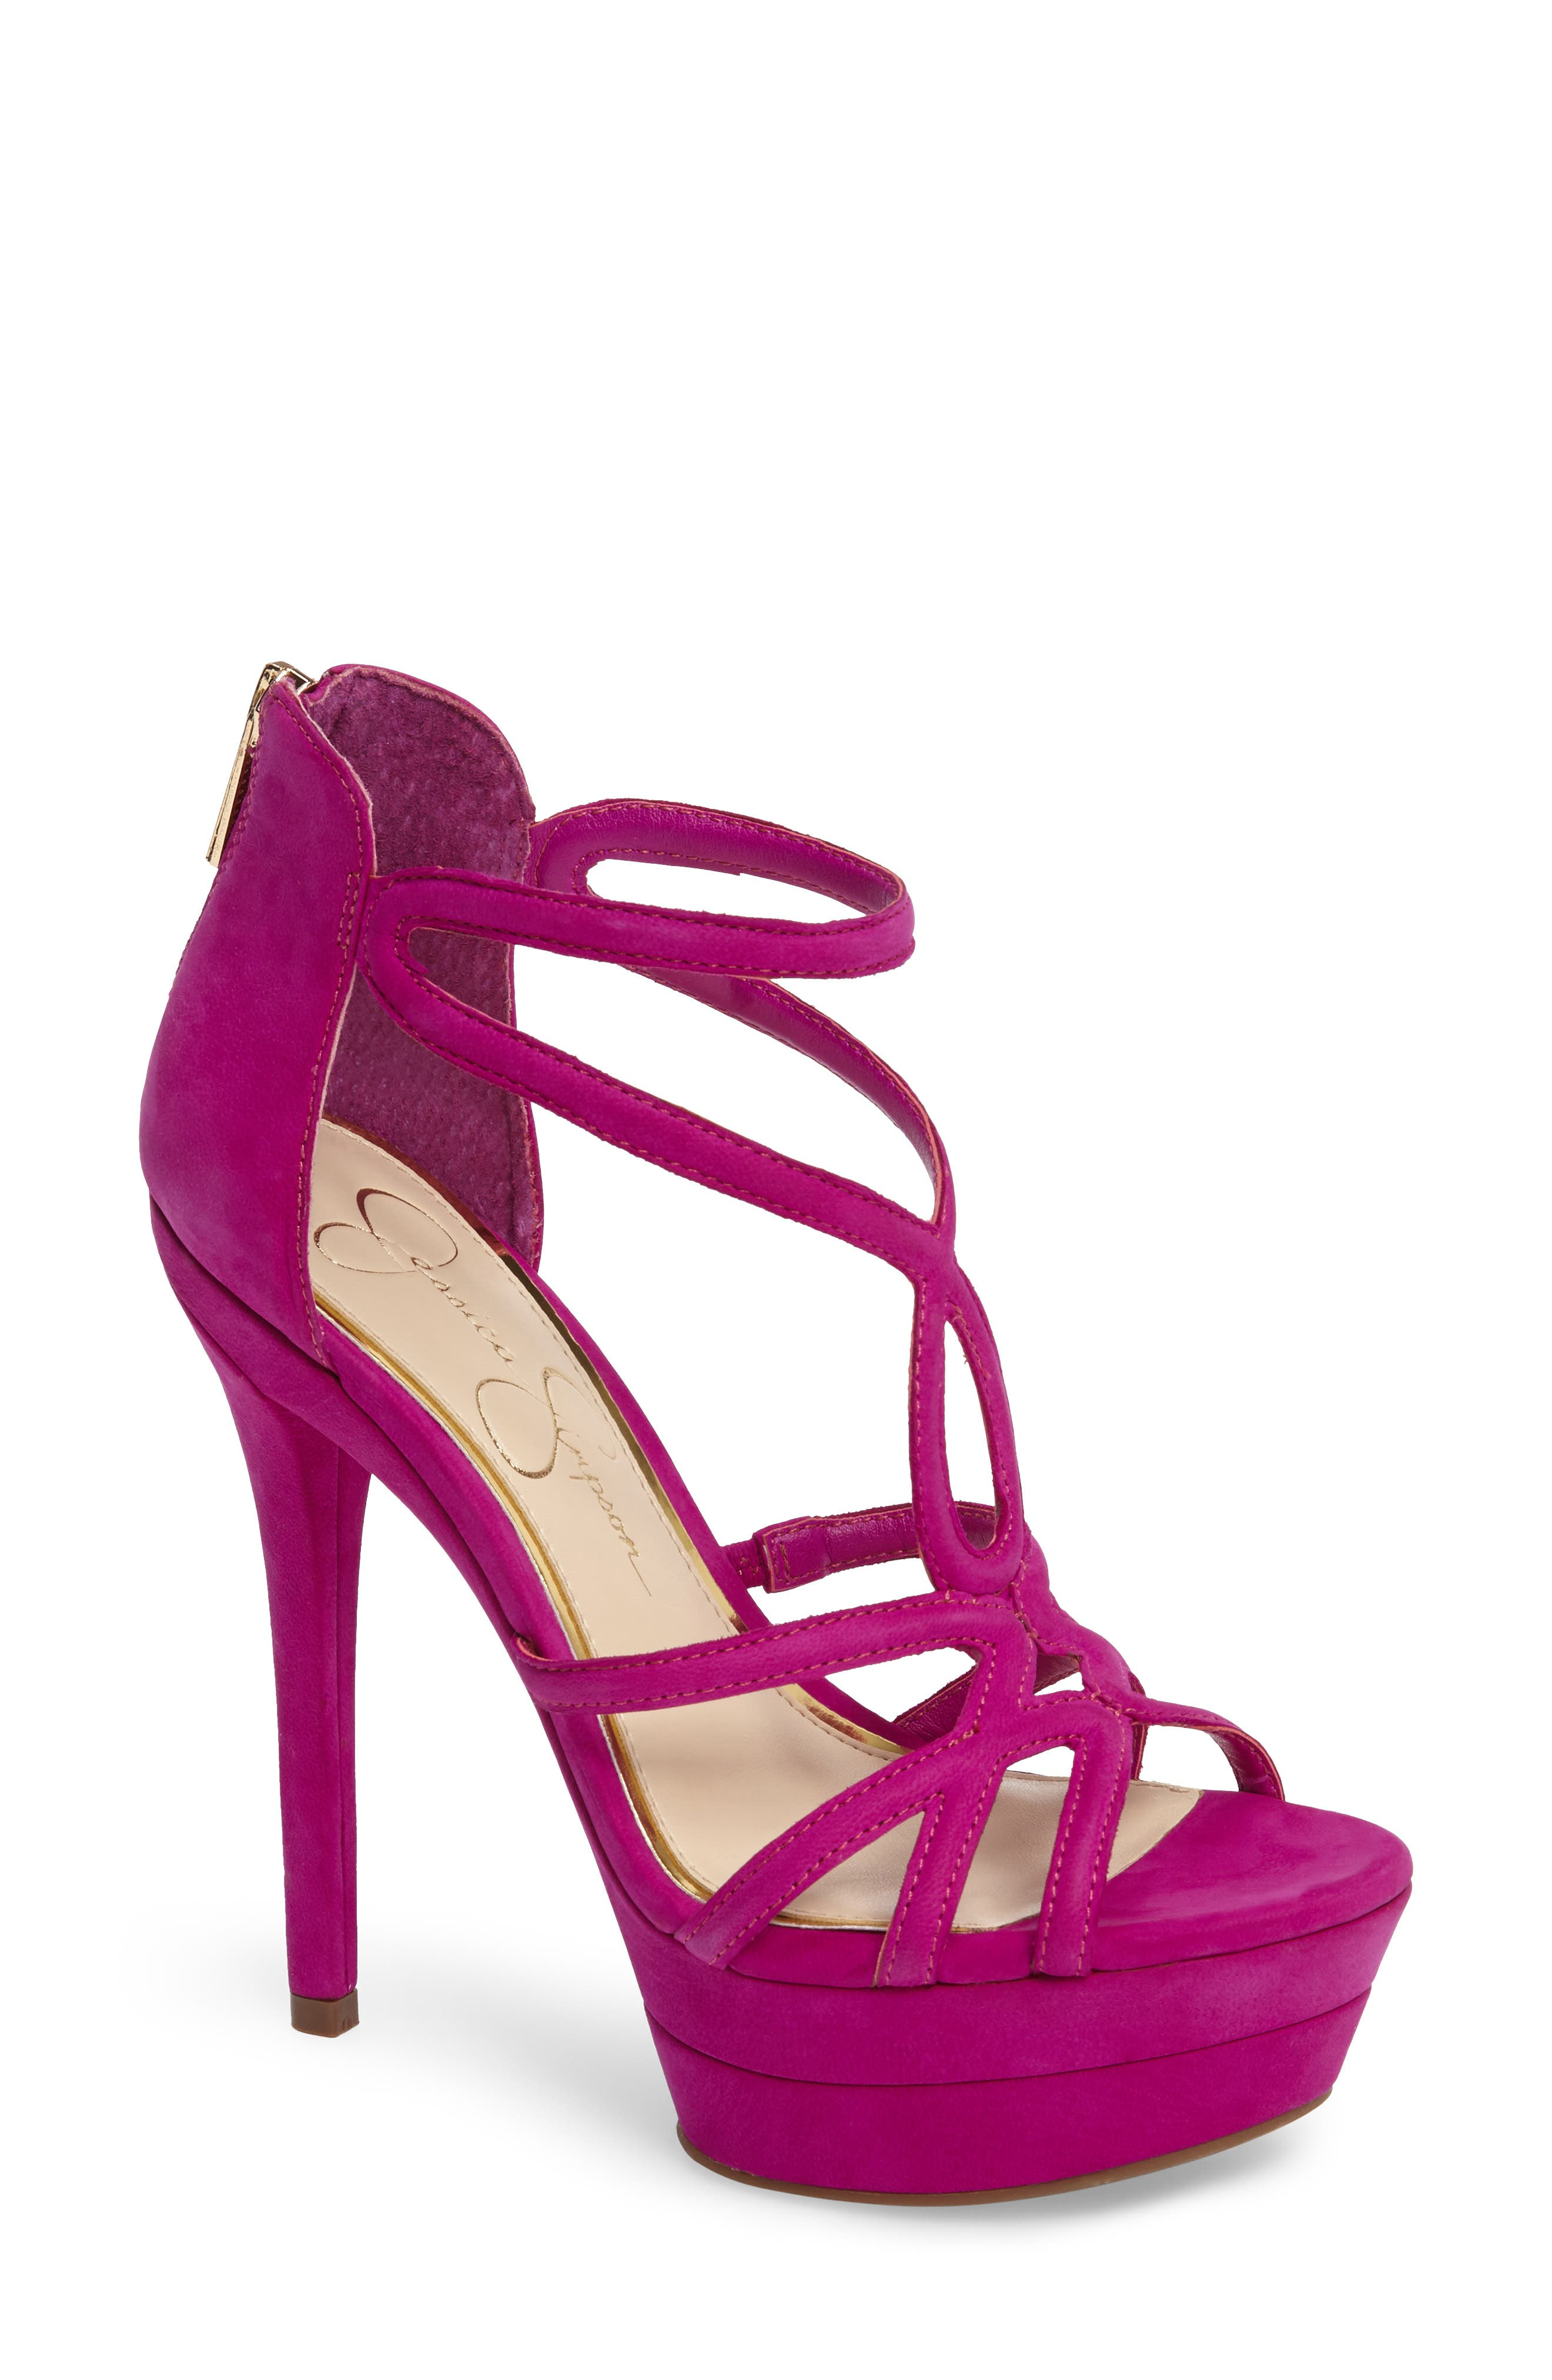 Alternate Image 1 Selected - Jessica Simpson Rozmari Platform Sandal (Women)